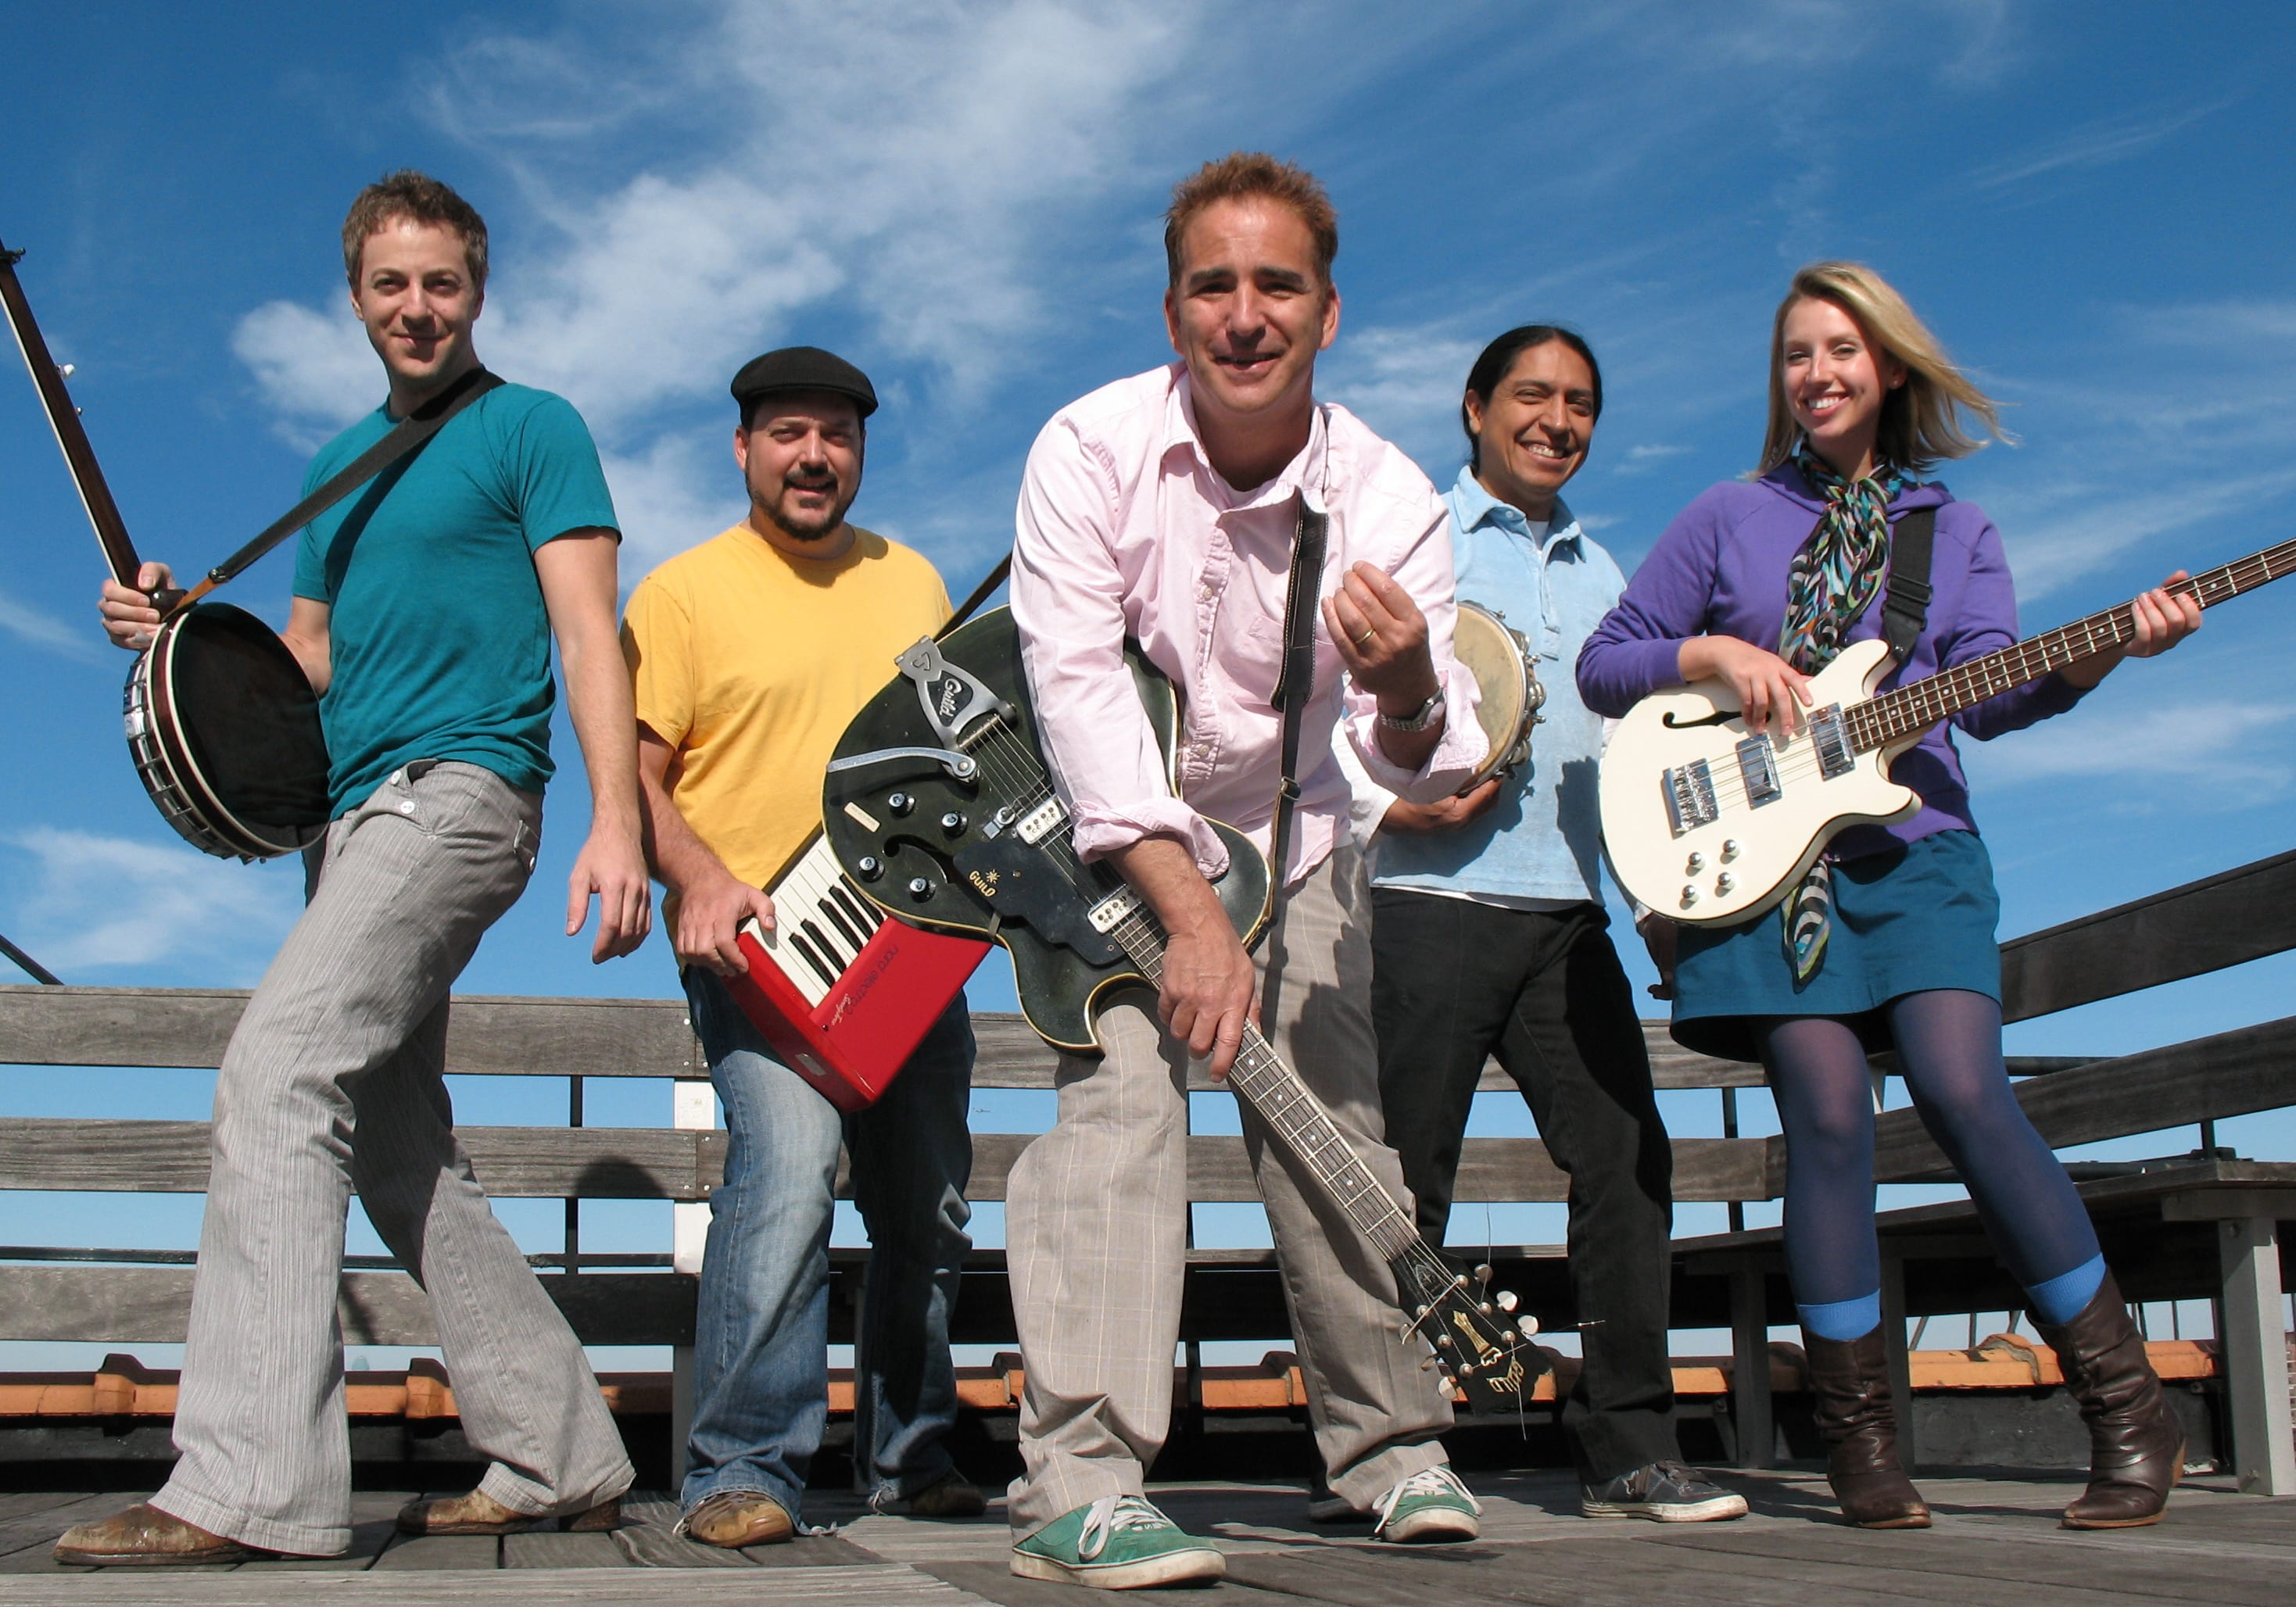 David Weinstone and The Music for Aardvarks Band Perform Family Concert at the Jewish Museum Sunday, February 12